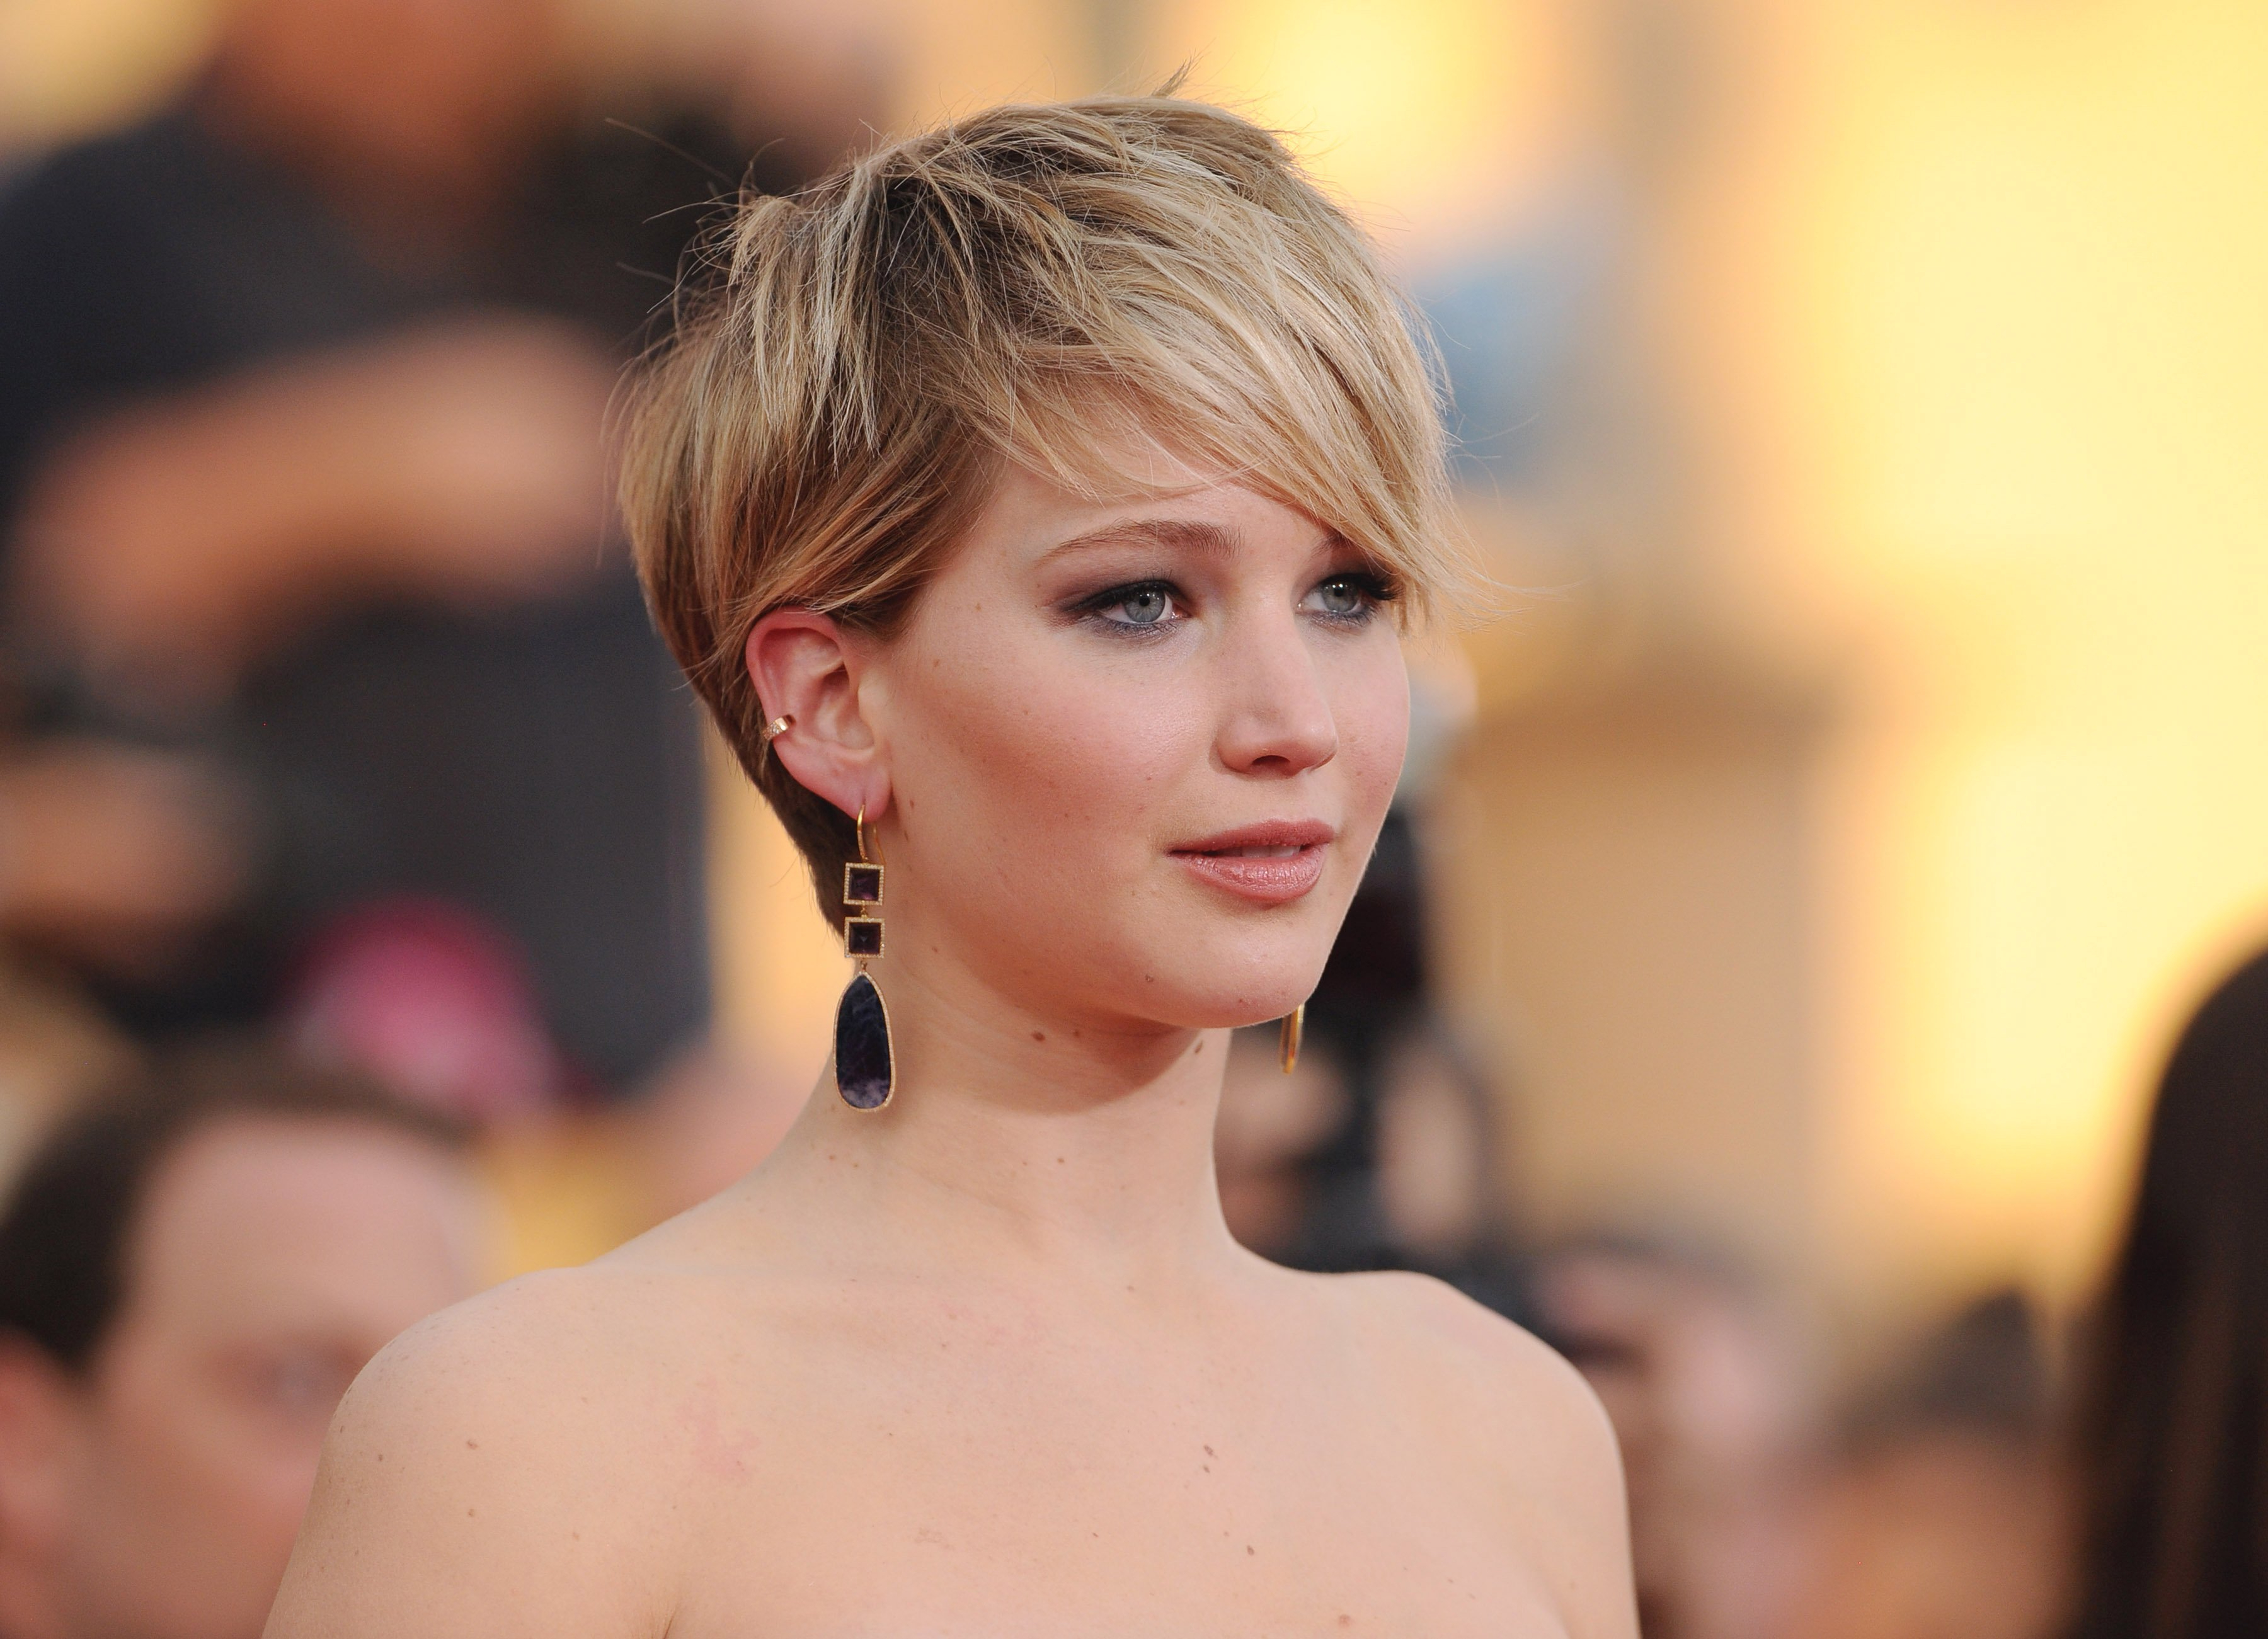 35 Fabulous Short Haircuts For Thick Hair Throughout Short Haircuts For Thick Fine Hair (View 6 of 25)